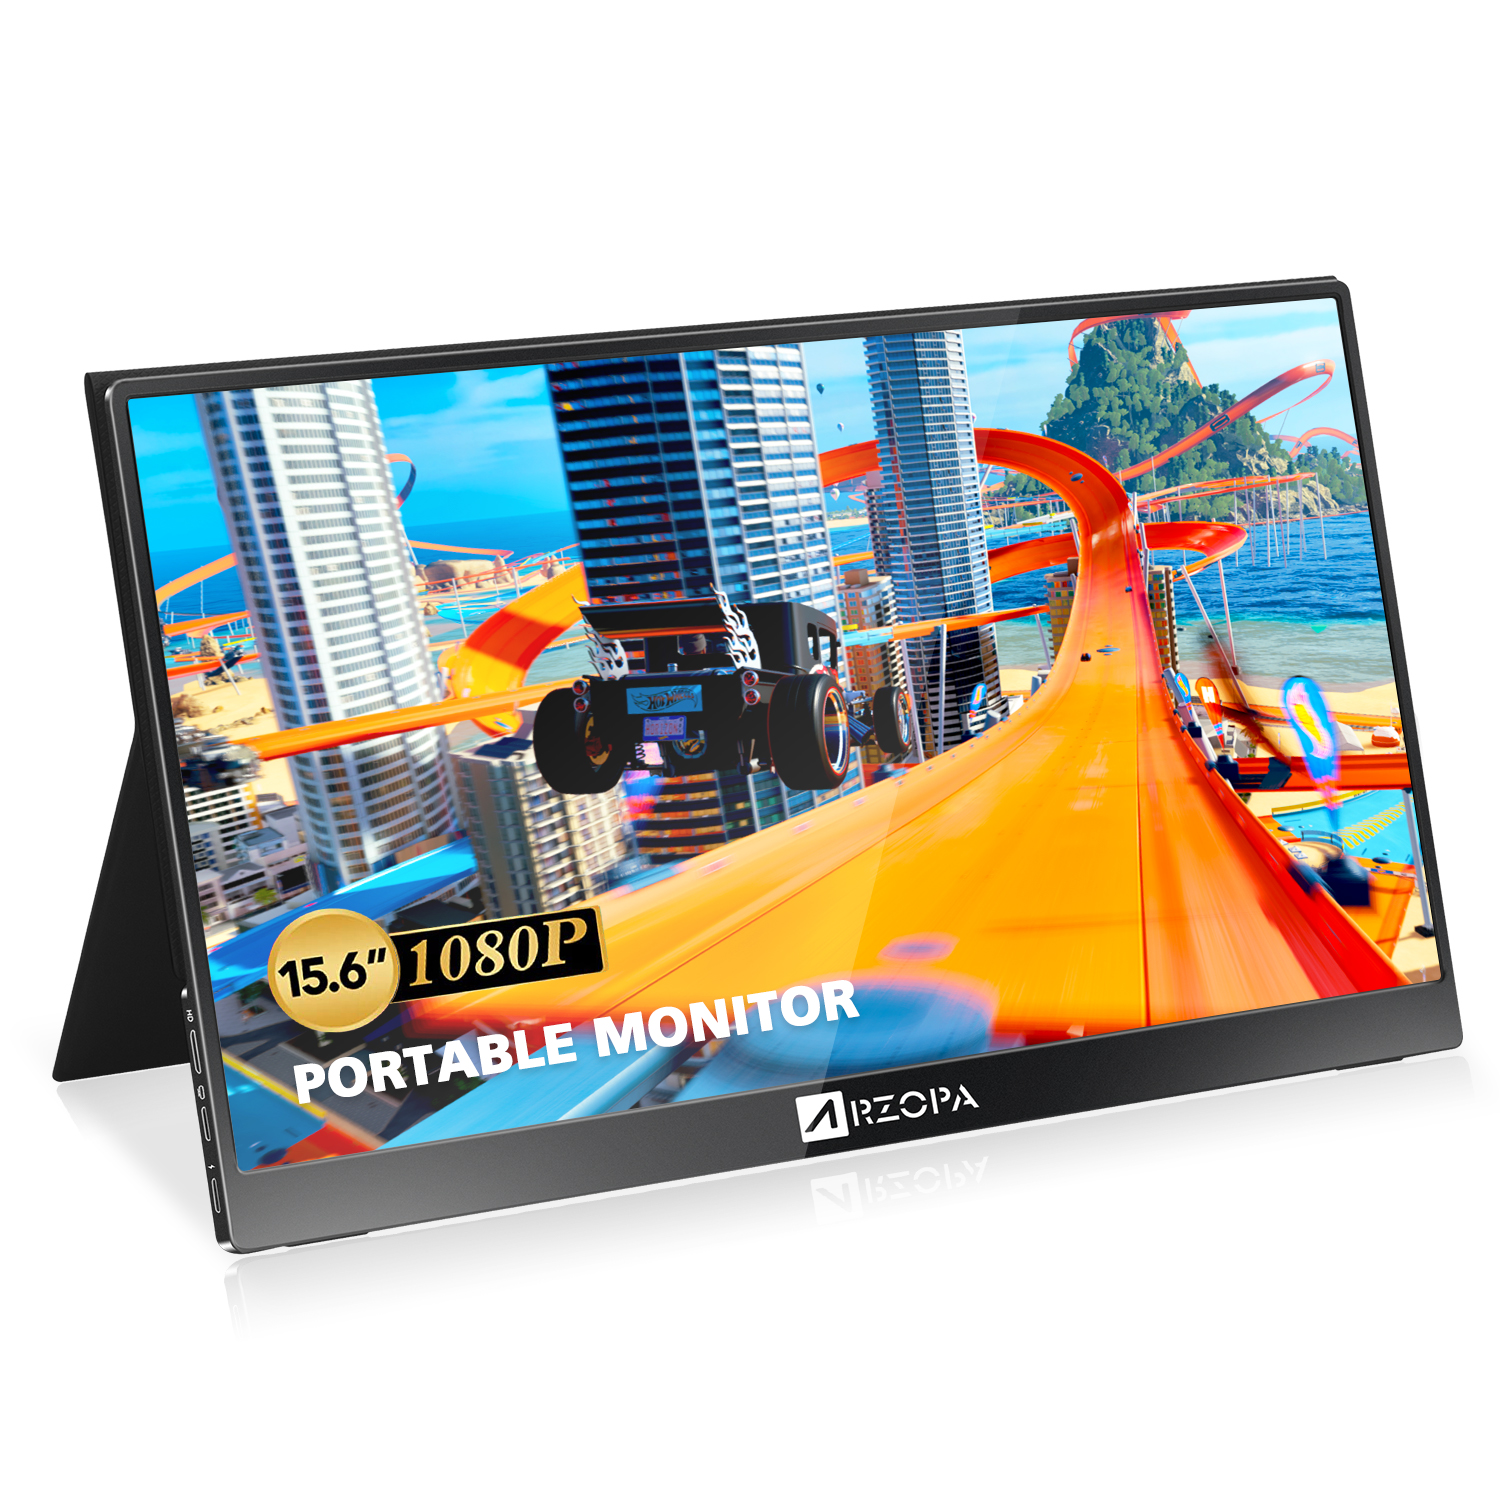 ARZOPA 15.6inch Portable Monitor 178 ° IPS HDR 1920x1080 Full HD PC Monitor USB C Game Monitor Eye Care Screen For PC/Laptop/PS5